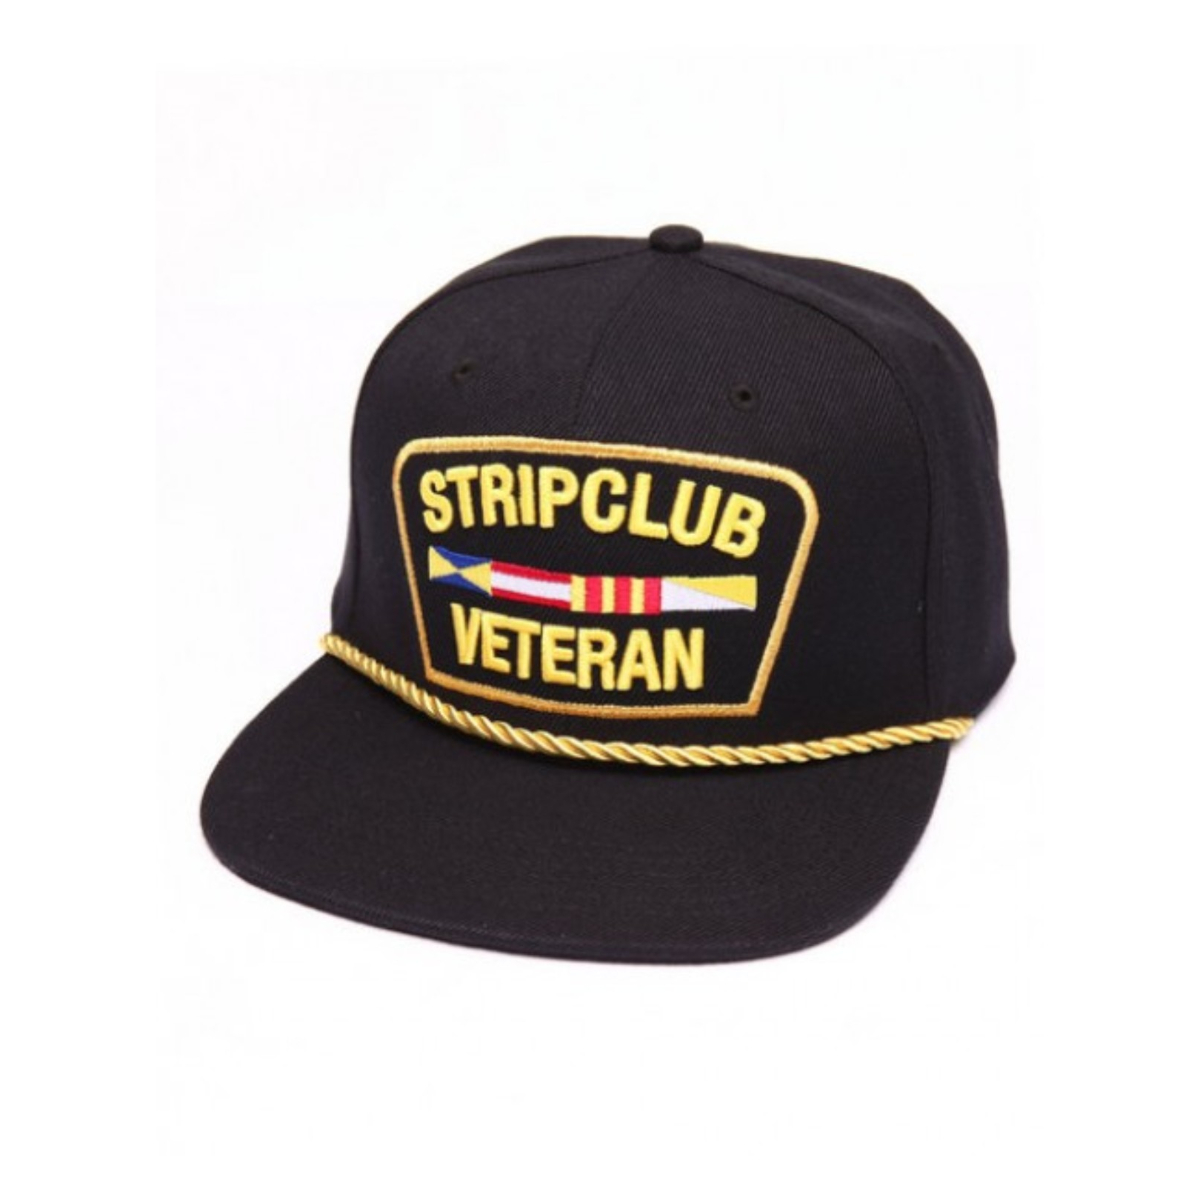 Strip Club Veteran Snapback - Black